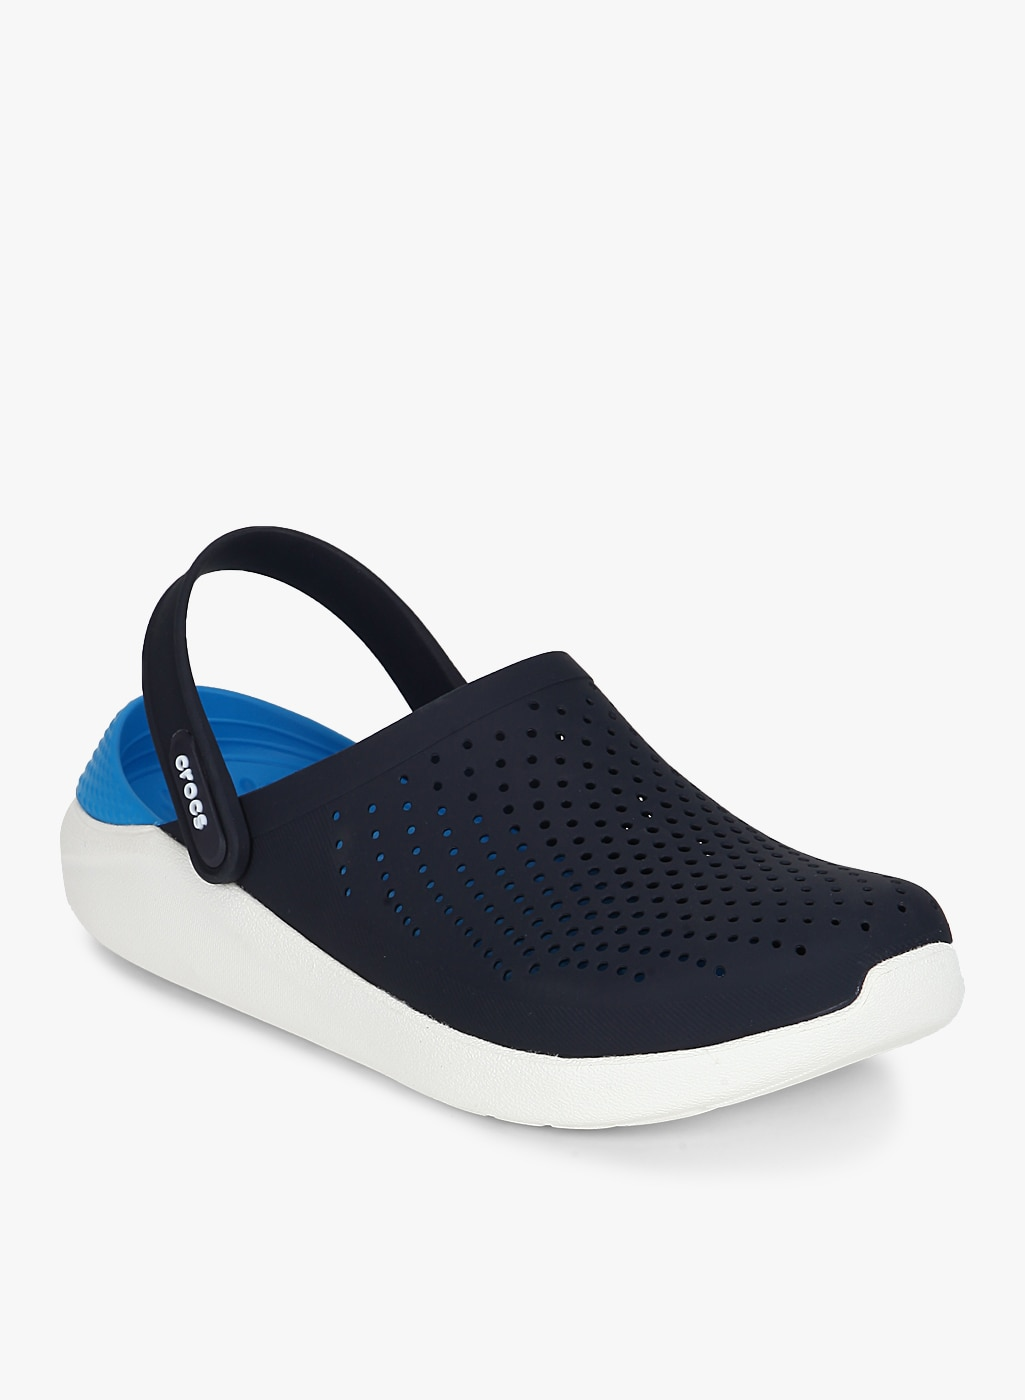 Crocs Literide W Navy Blue Sandals for women - Get stylish shoes for ... 24bdff433